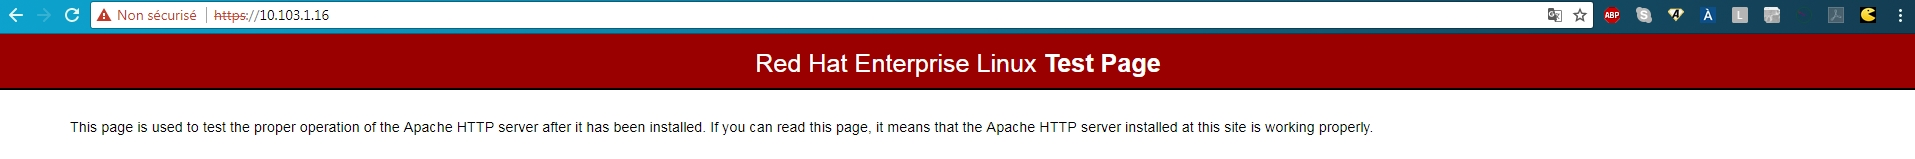 Nom : 2018-01-26 09_50_19-Test Page for the Apache HTTP Server on Red Hat Enterprise Linux.jpg